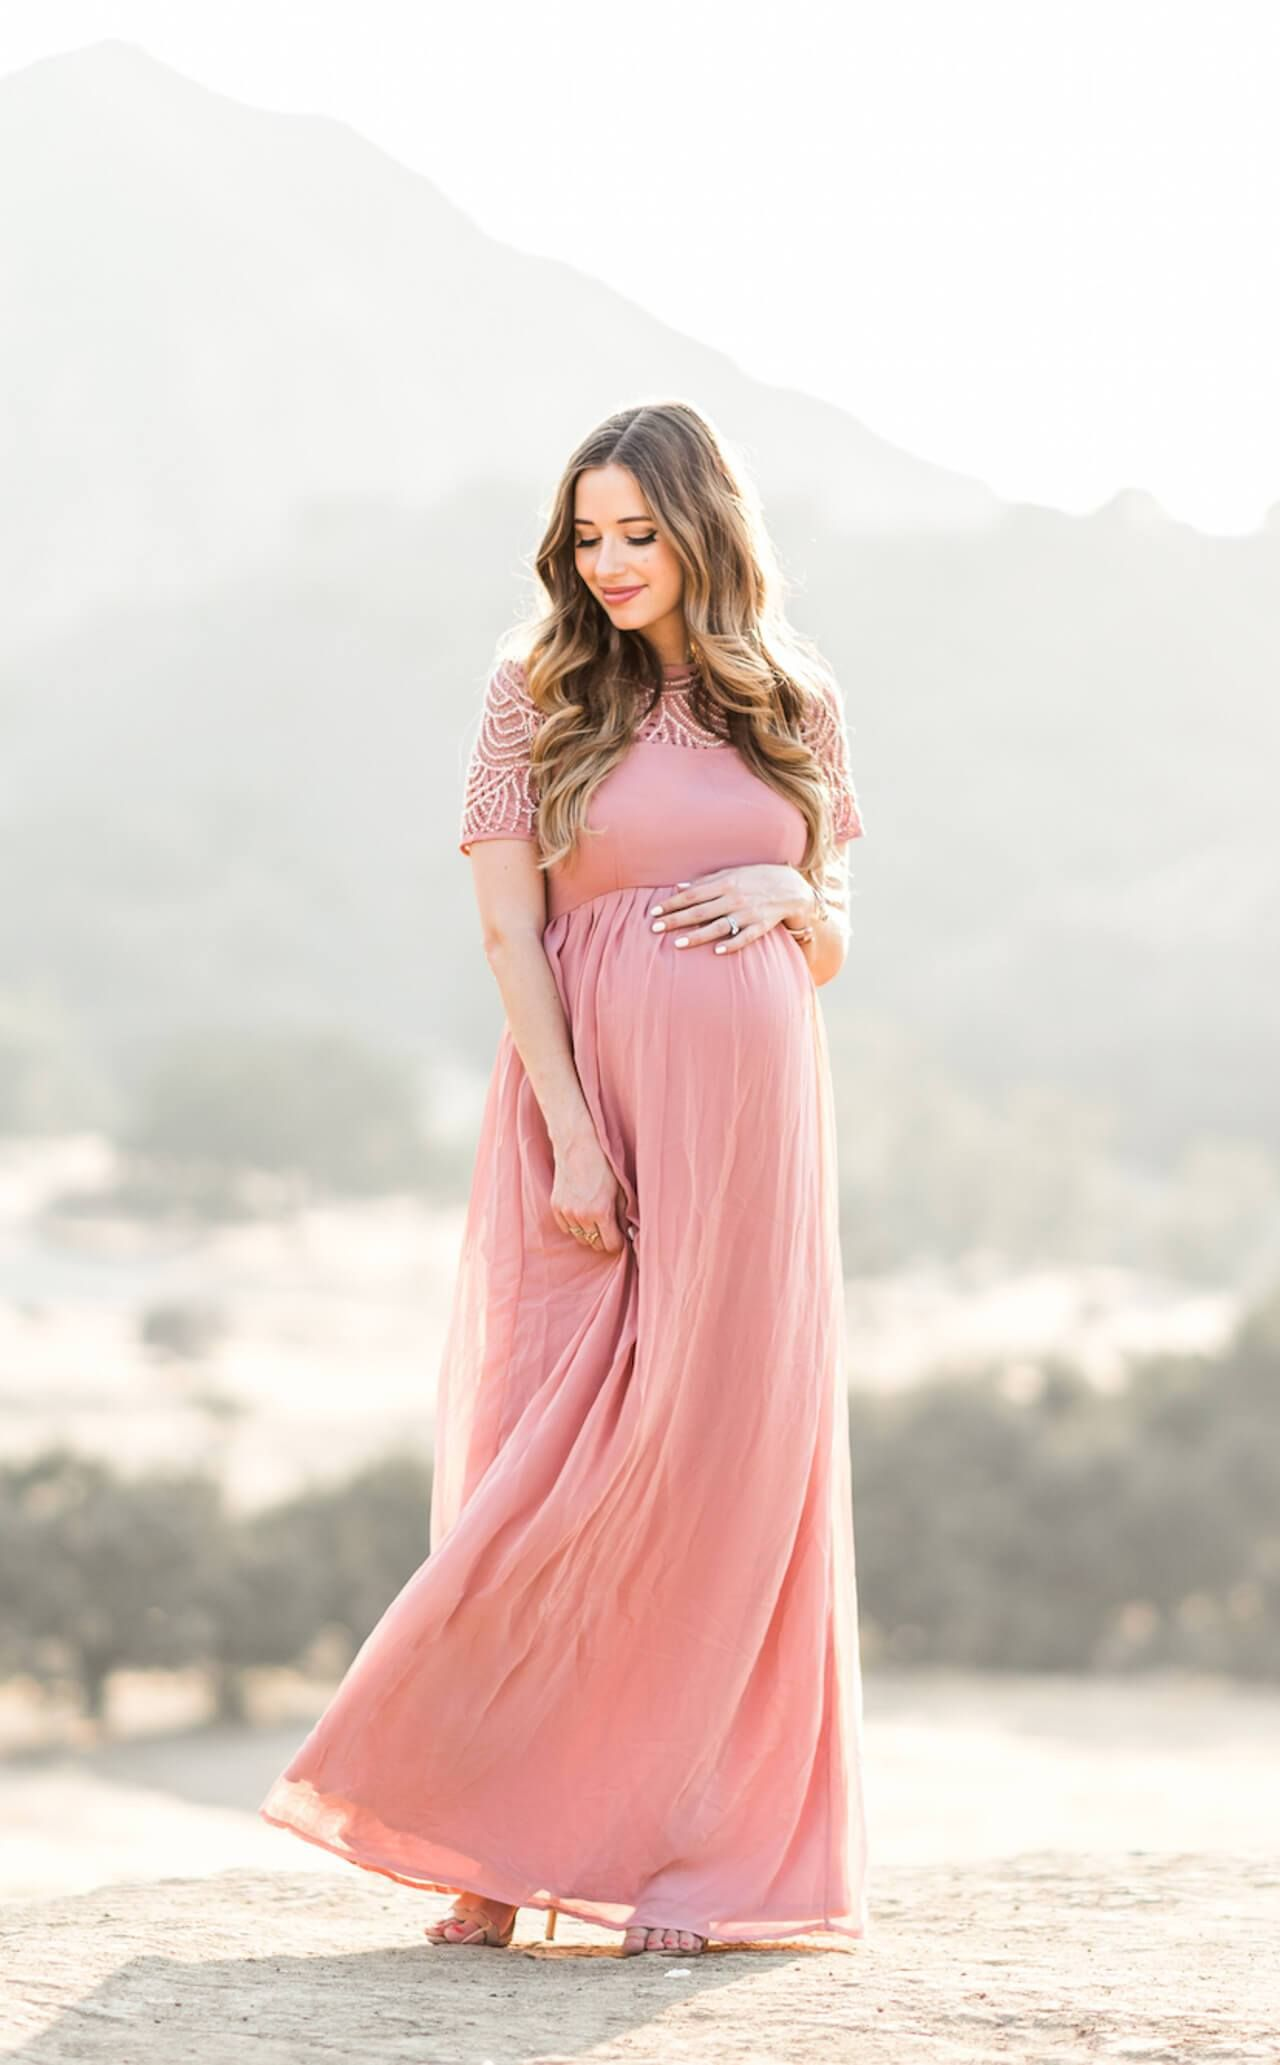 e82e15ee53954 Maternity Shoot in the Fields | From the Blog | Maternity fashion ...